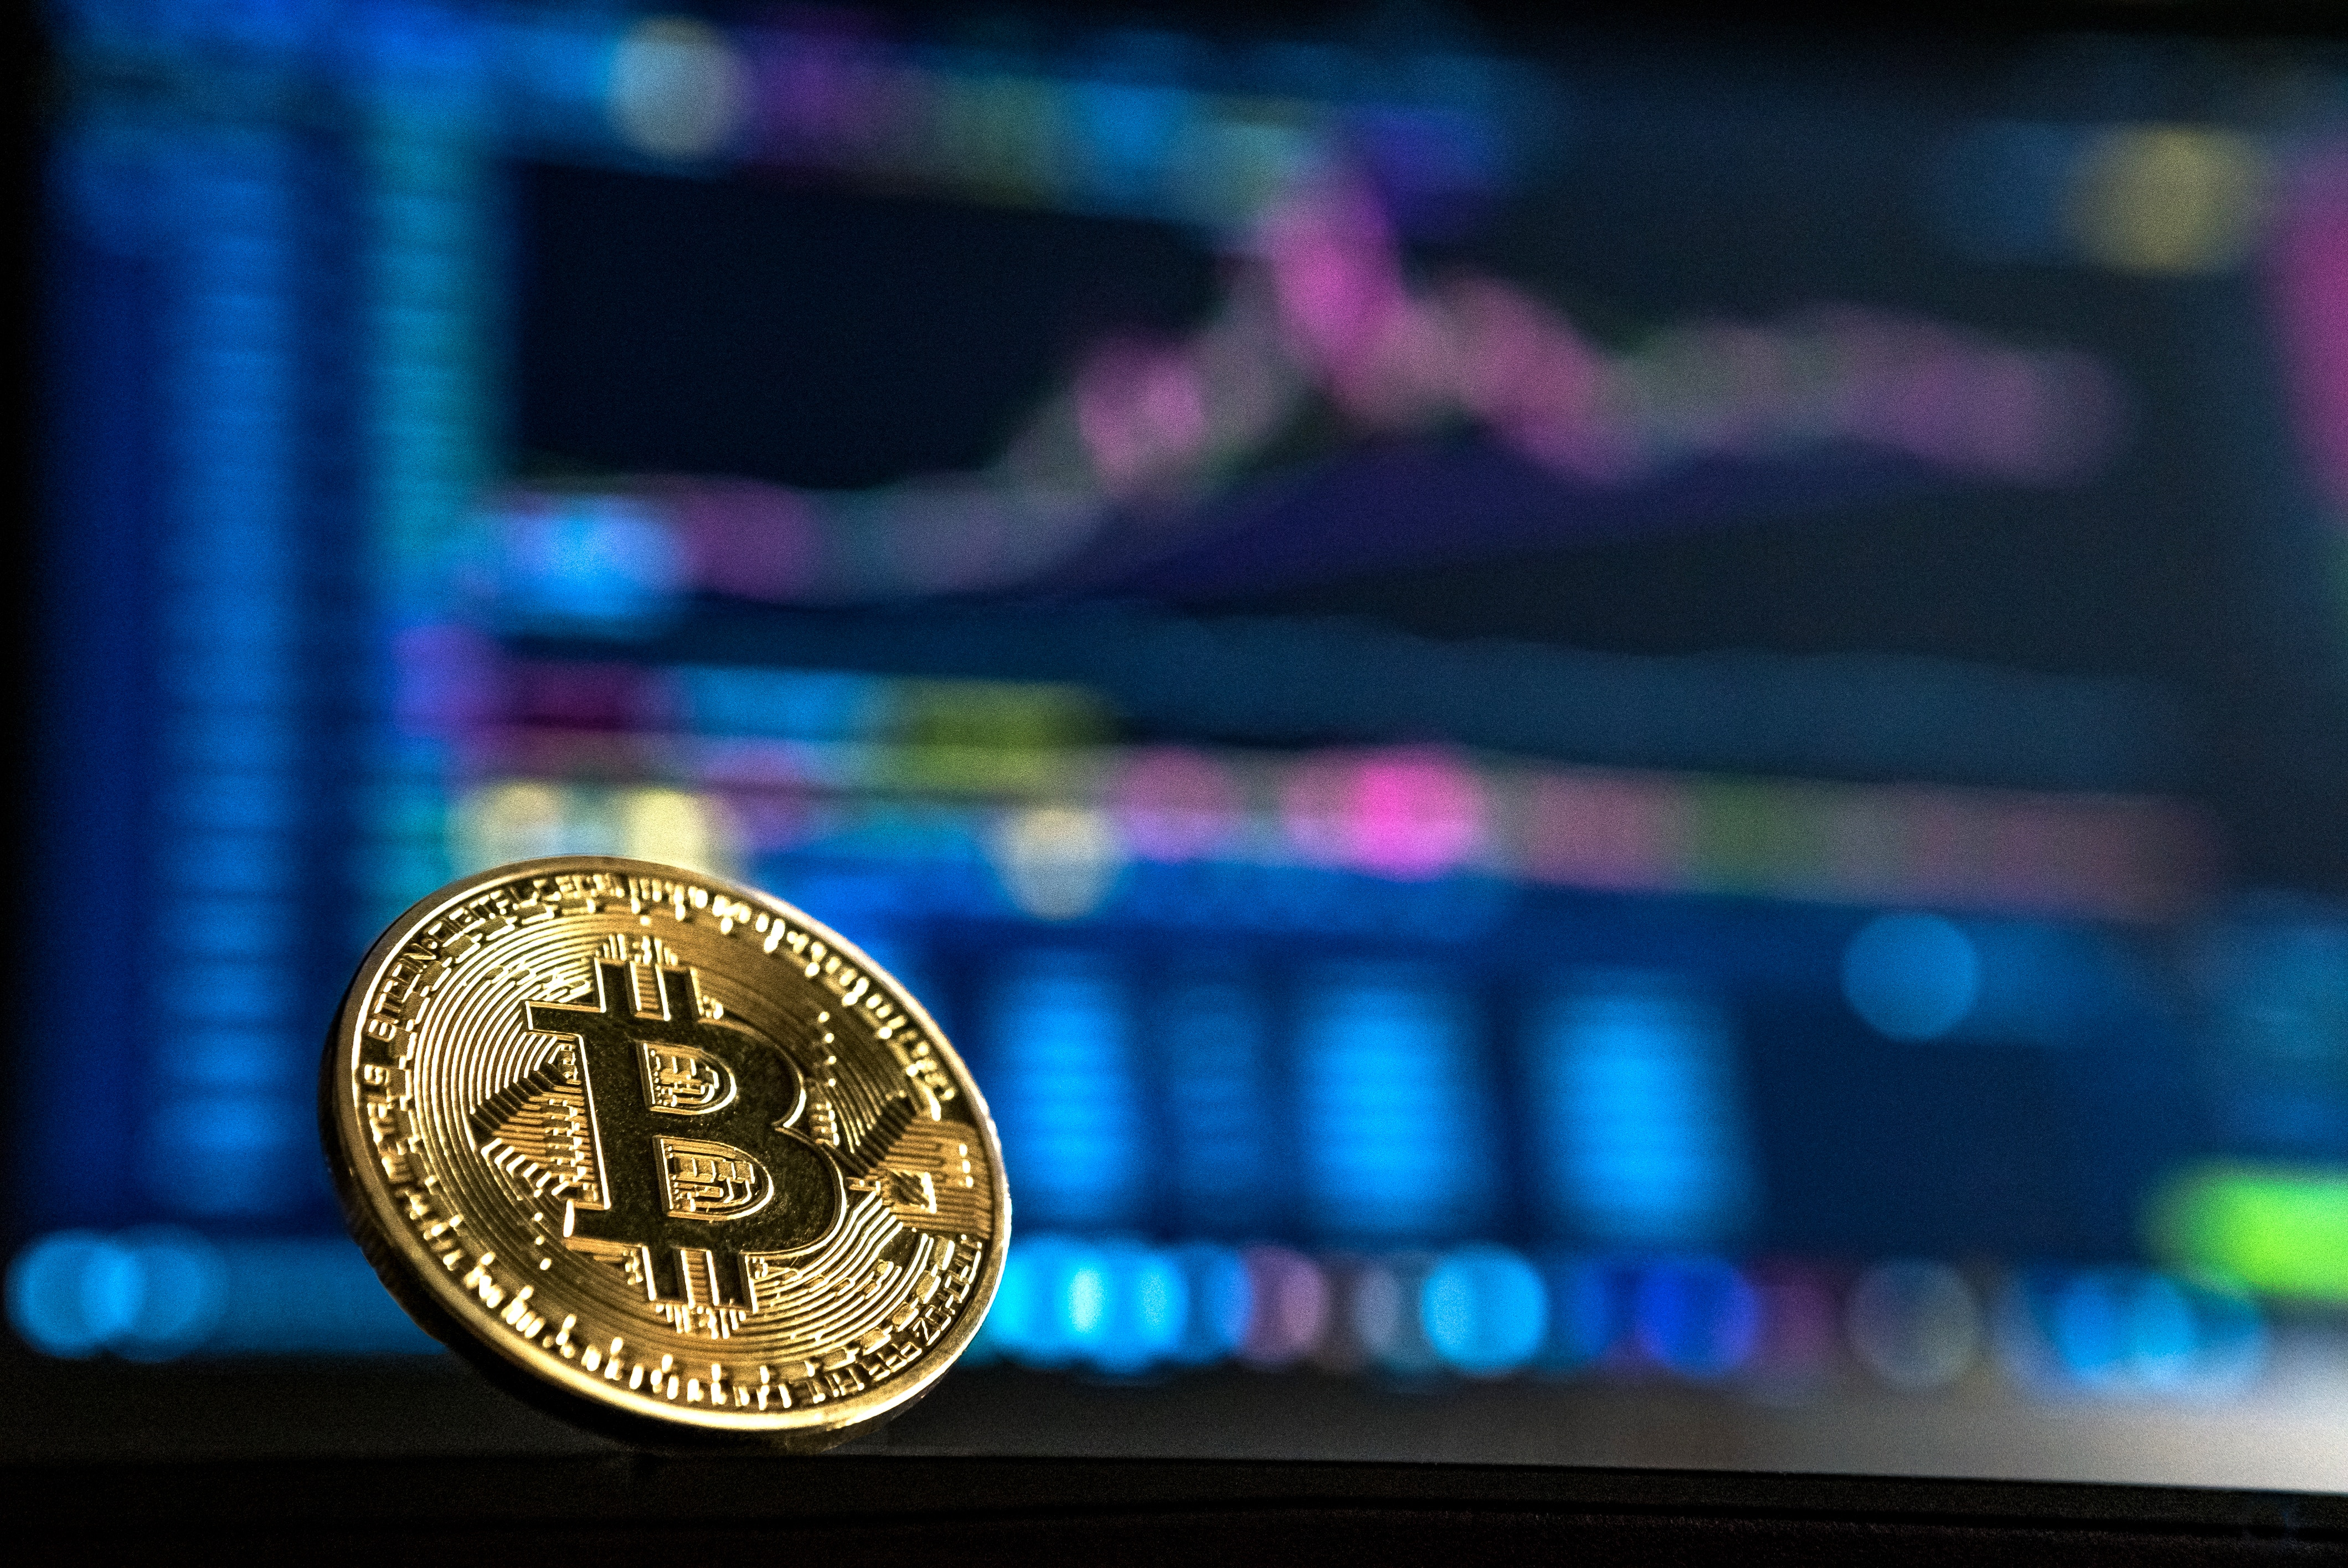 environmental issues related to mining bitcoins